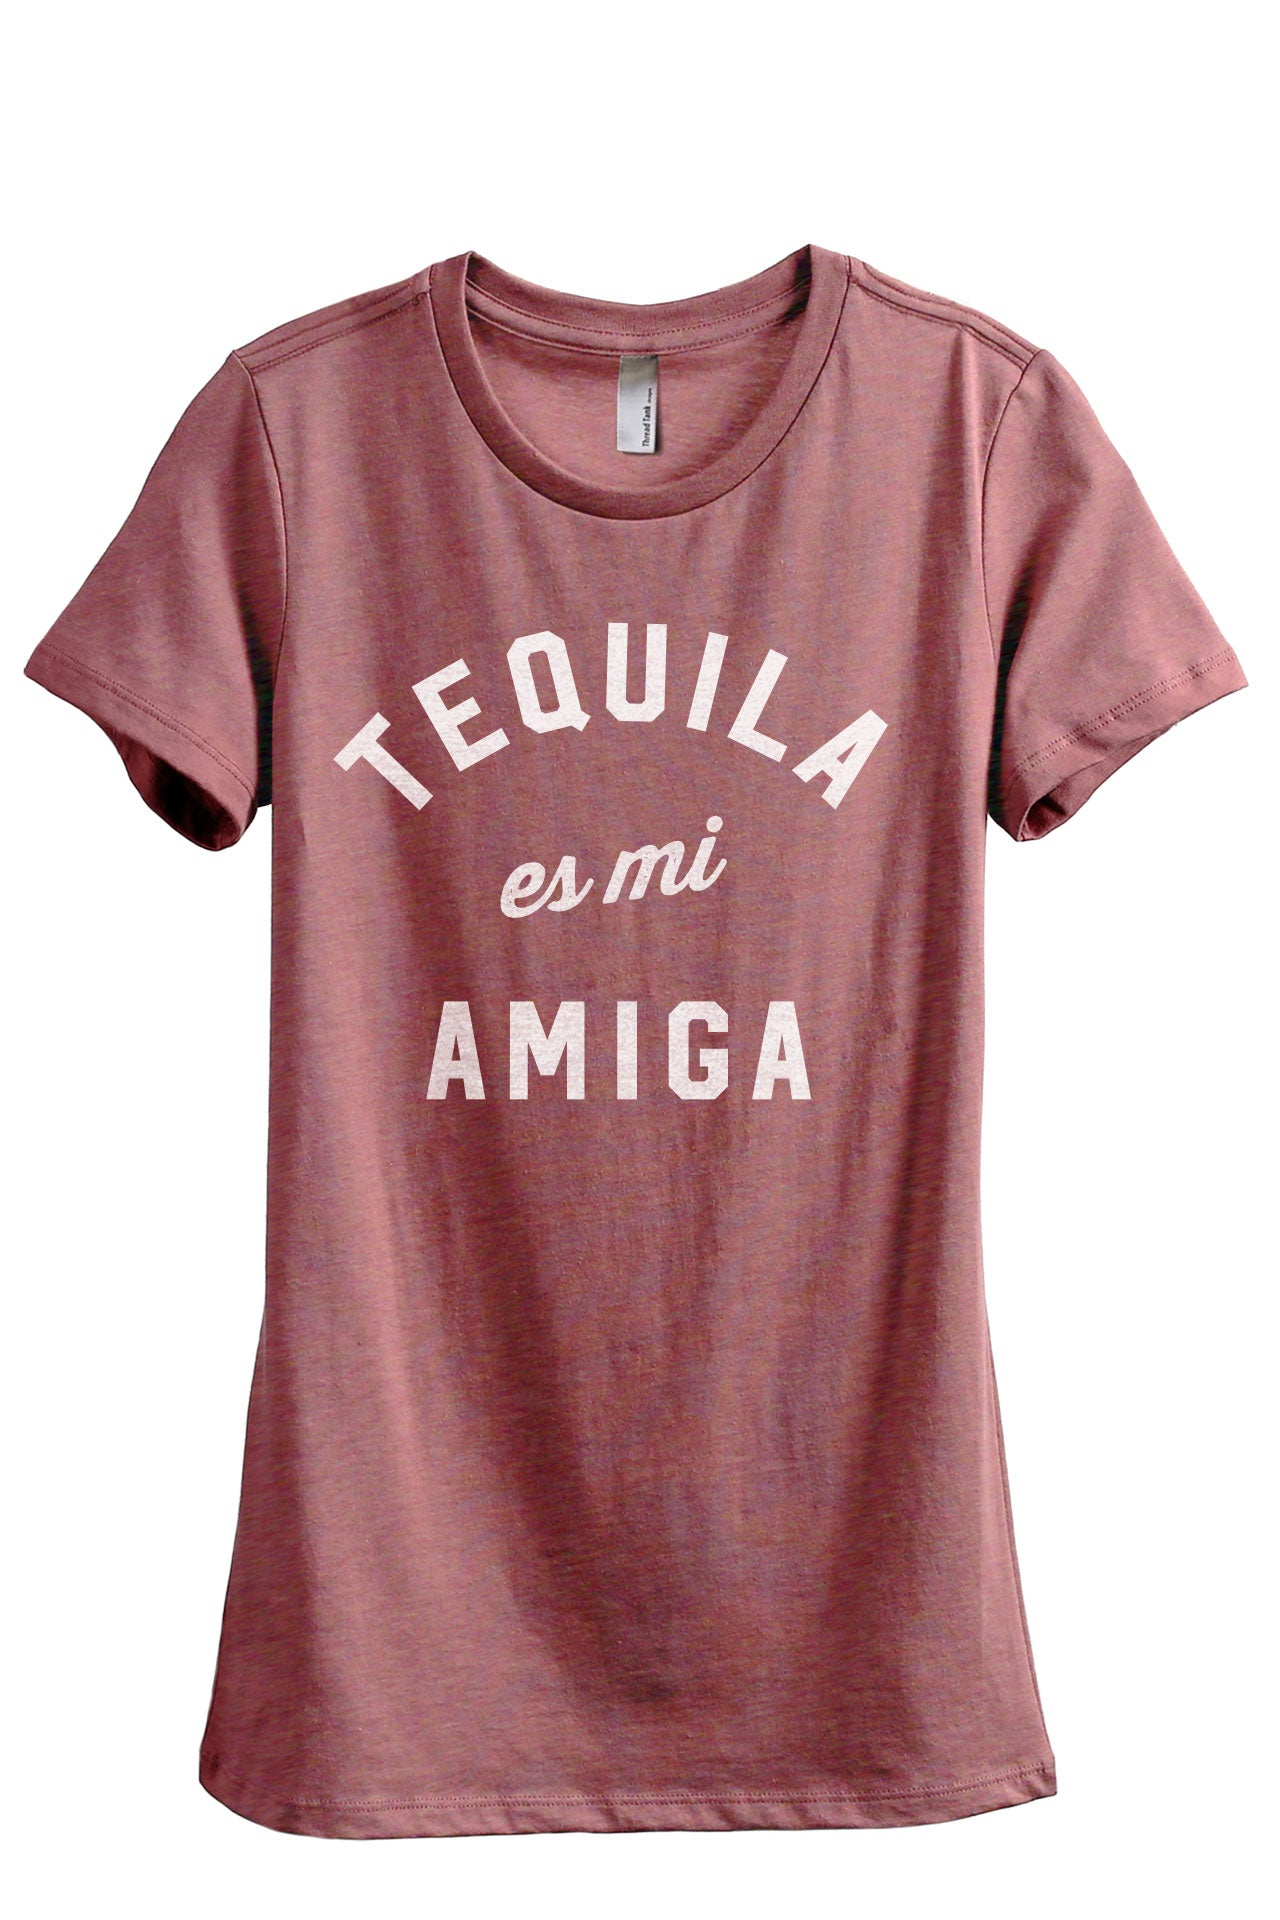 Tequila Es Mi Amiga Women's Relaxed Crewneck T-Shirt Top Tee Heather Rouge